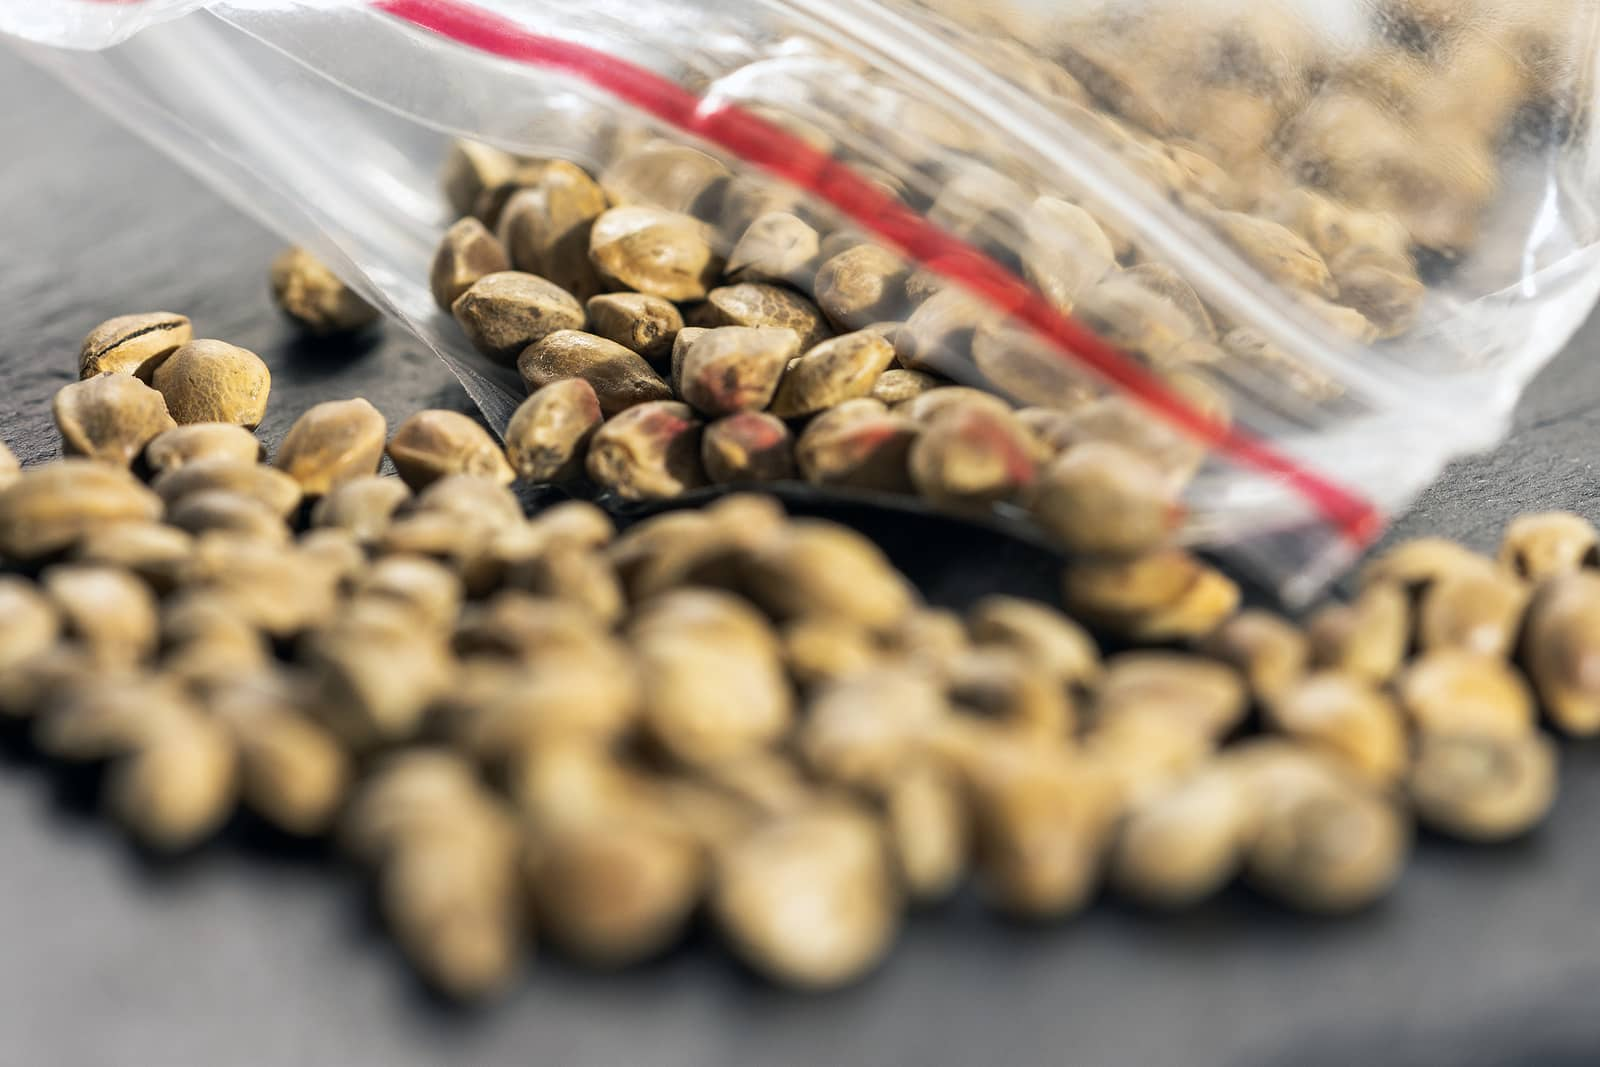 Low Cost Cannabis Seeds are Available in Halifax